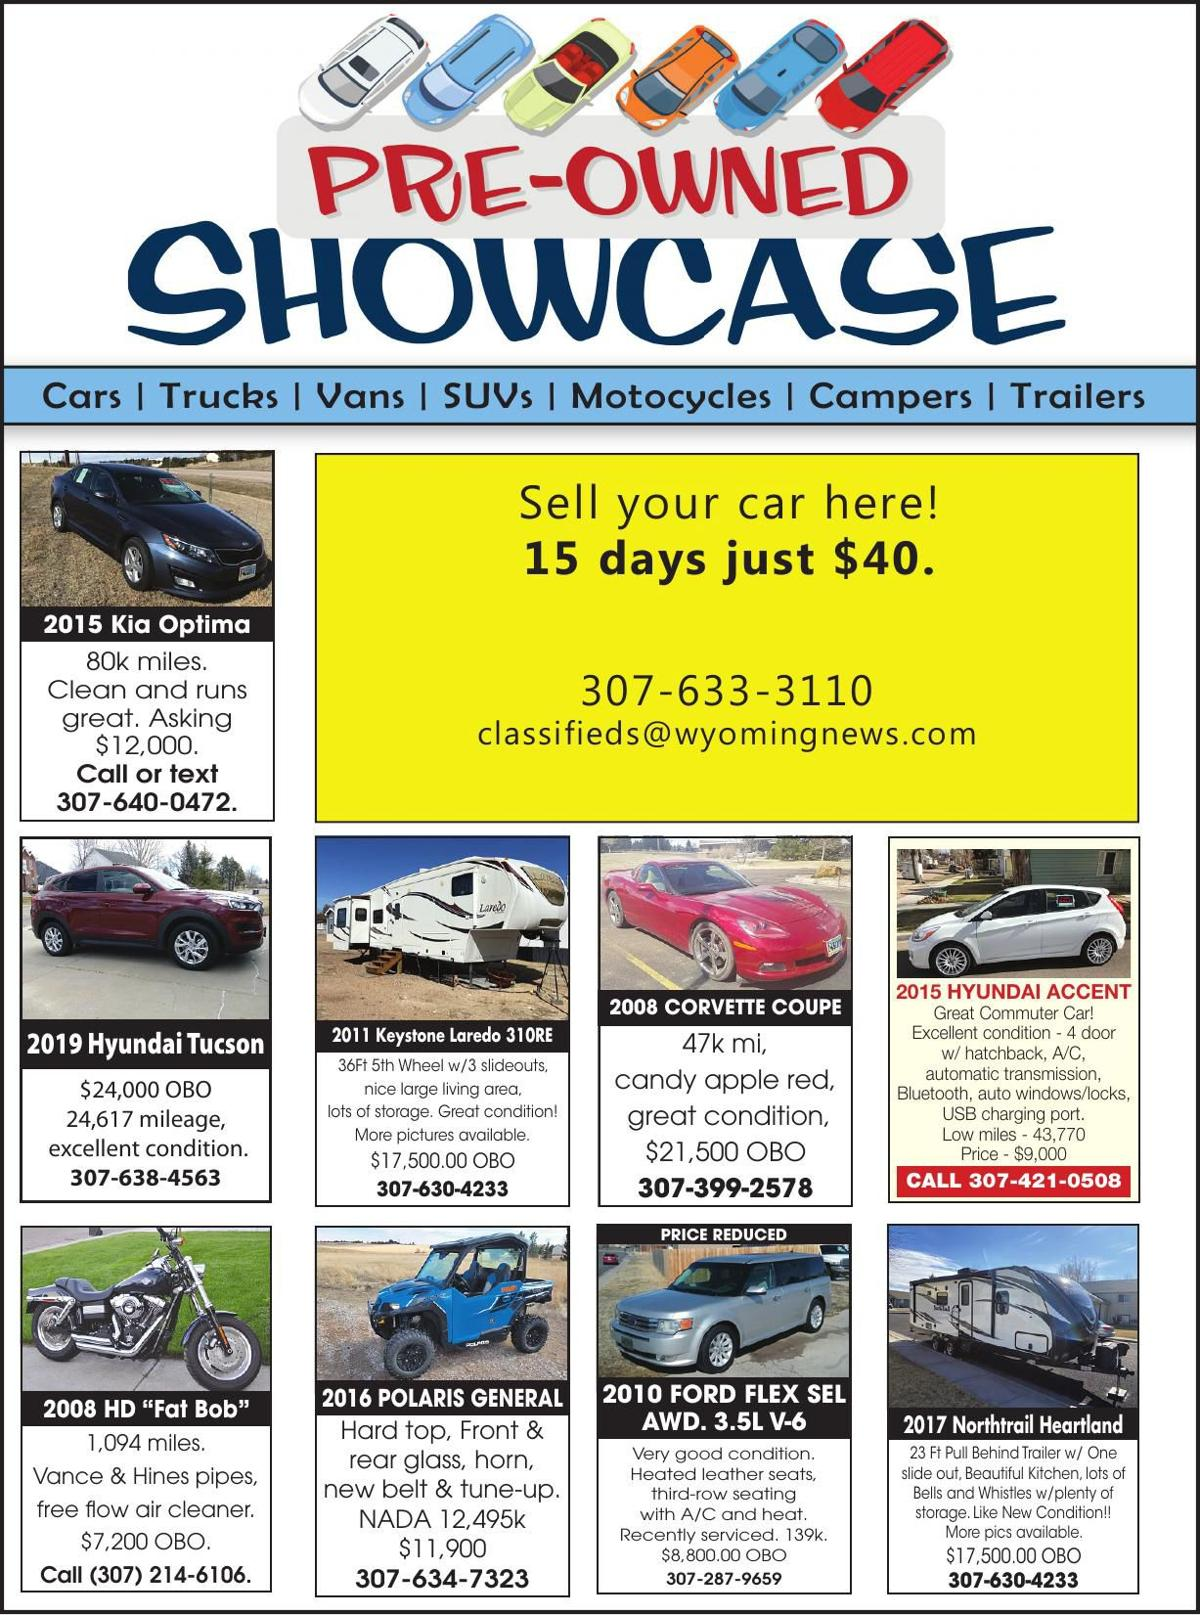 Pre-Owned Showcase